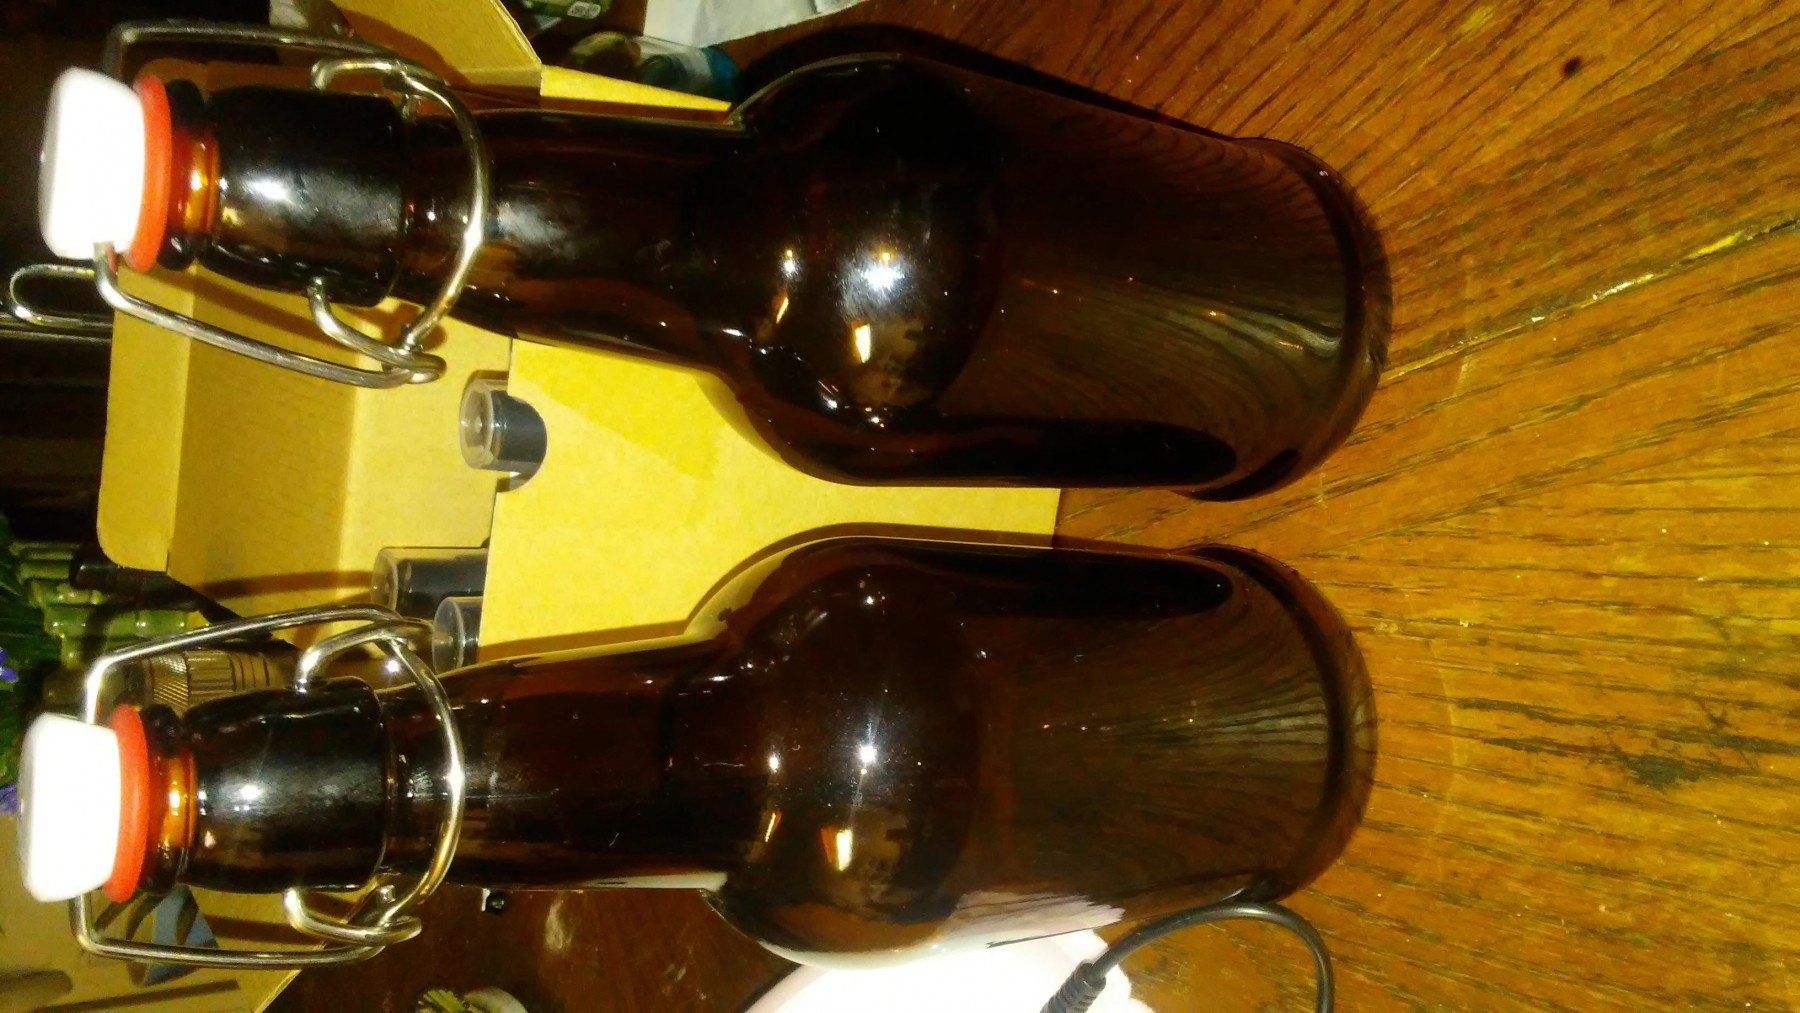 Very durable well made bottles